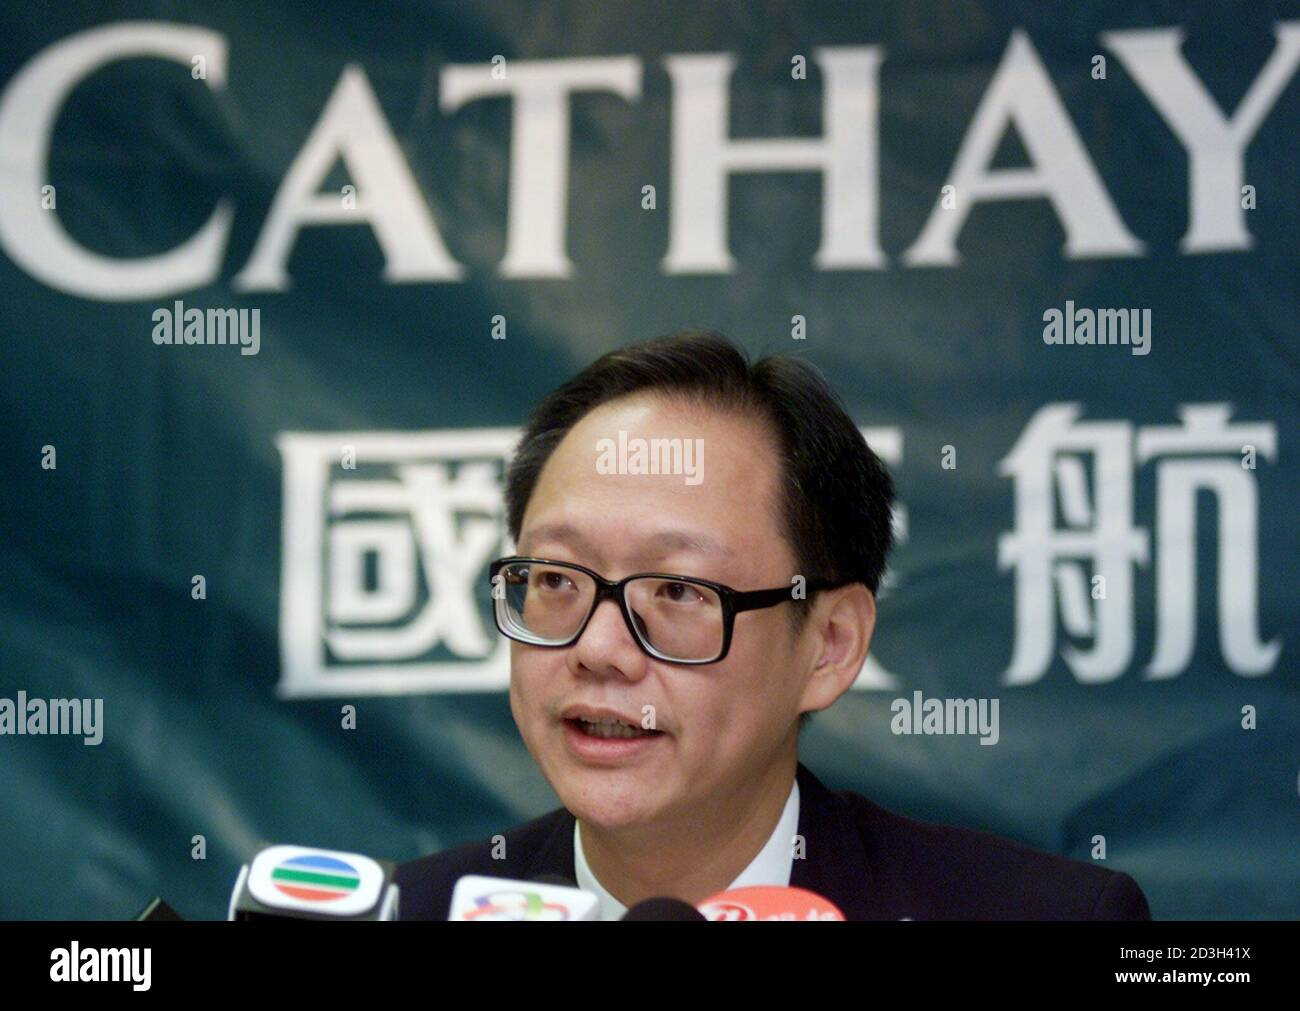 Philip Chen, director and chief operating officer of Cathay Pacific Airways, speaks during a news conference in Hong Kong July 9, 2001. Cathay, Asia's fourth largest airline said on Monday it had sacked 49 pilots and would implement a new pay and rostering package unilaterally, in effect trying to impose its will on pilots during a labour dispute, which is the second major dispute between Cathay pilots and management in as many years.  BY/CP Stock Photo